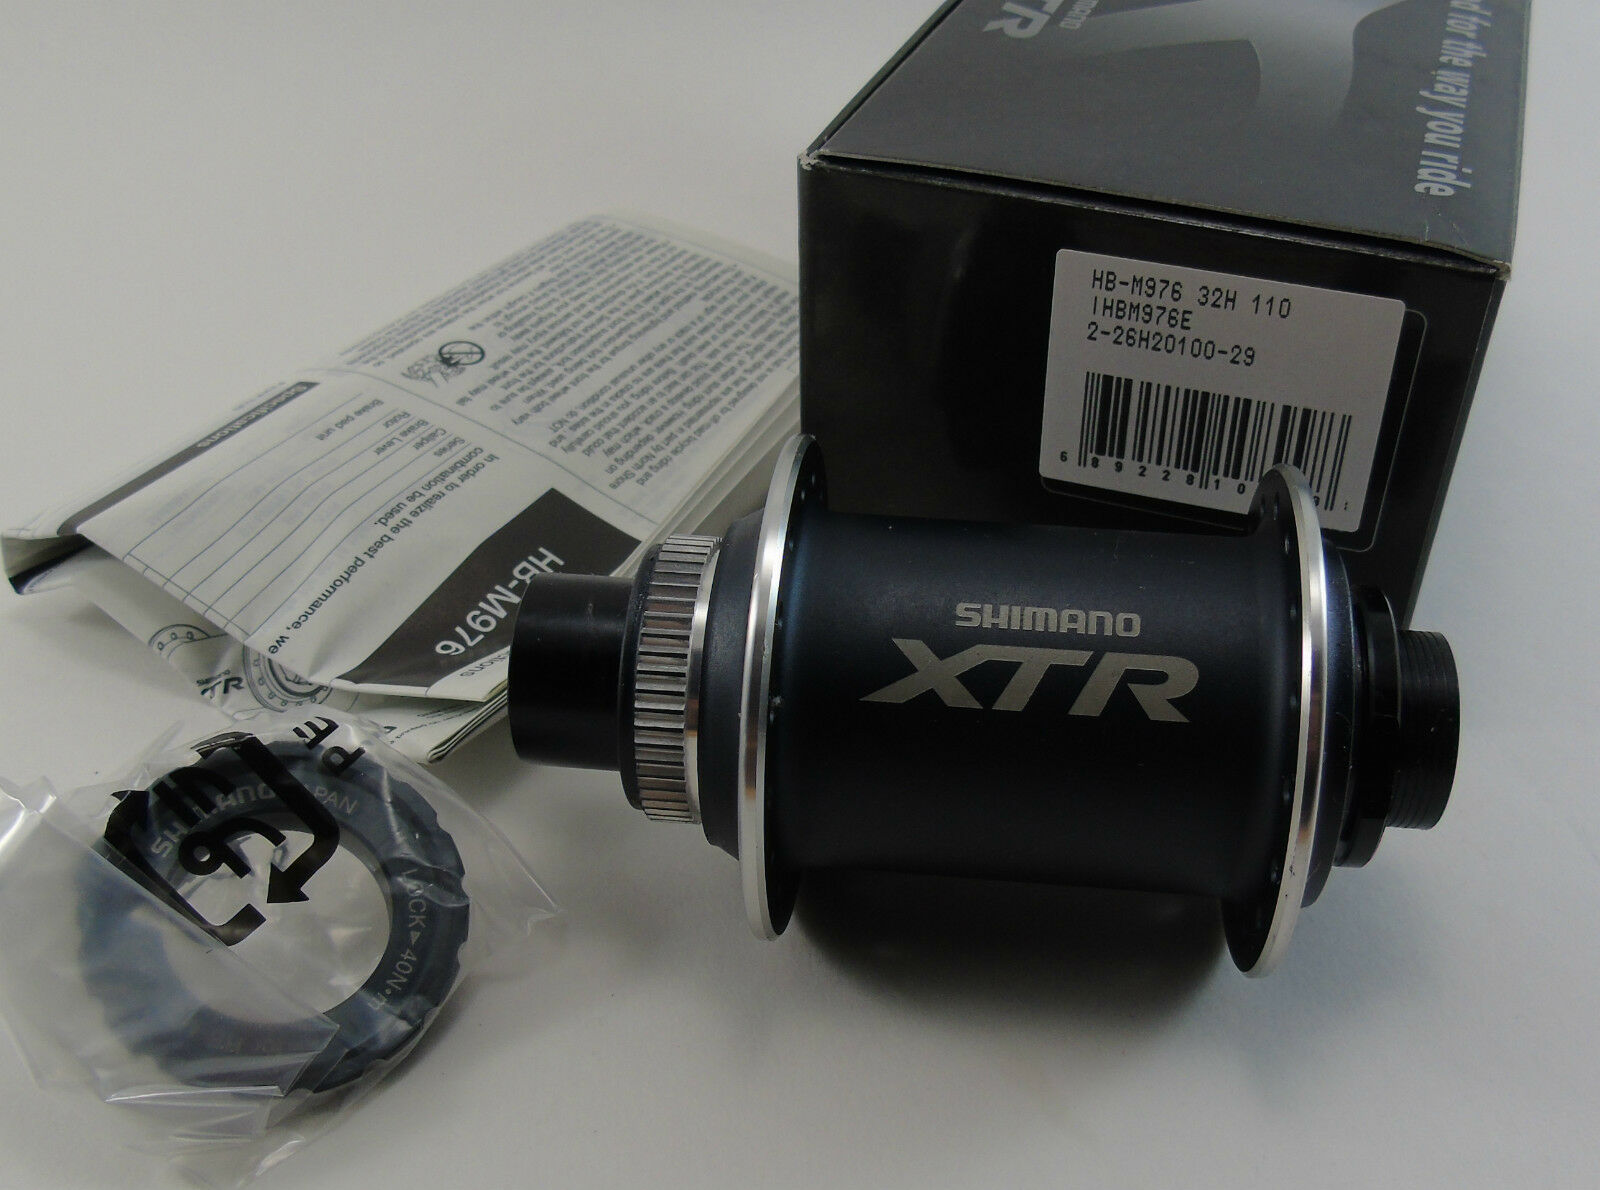 NOS SHIMANO XTR DISC FRONT HUB, HB-M976, 20x110mm, 32H, BRAND NEW IN BOX